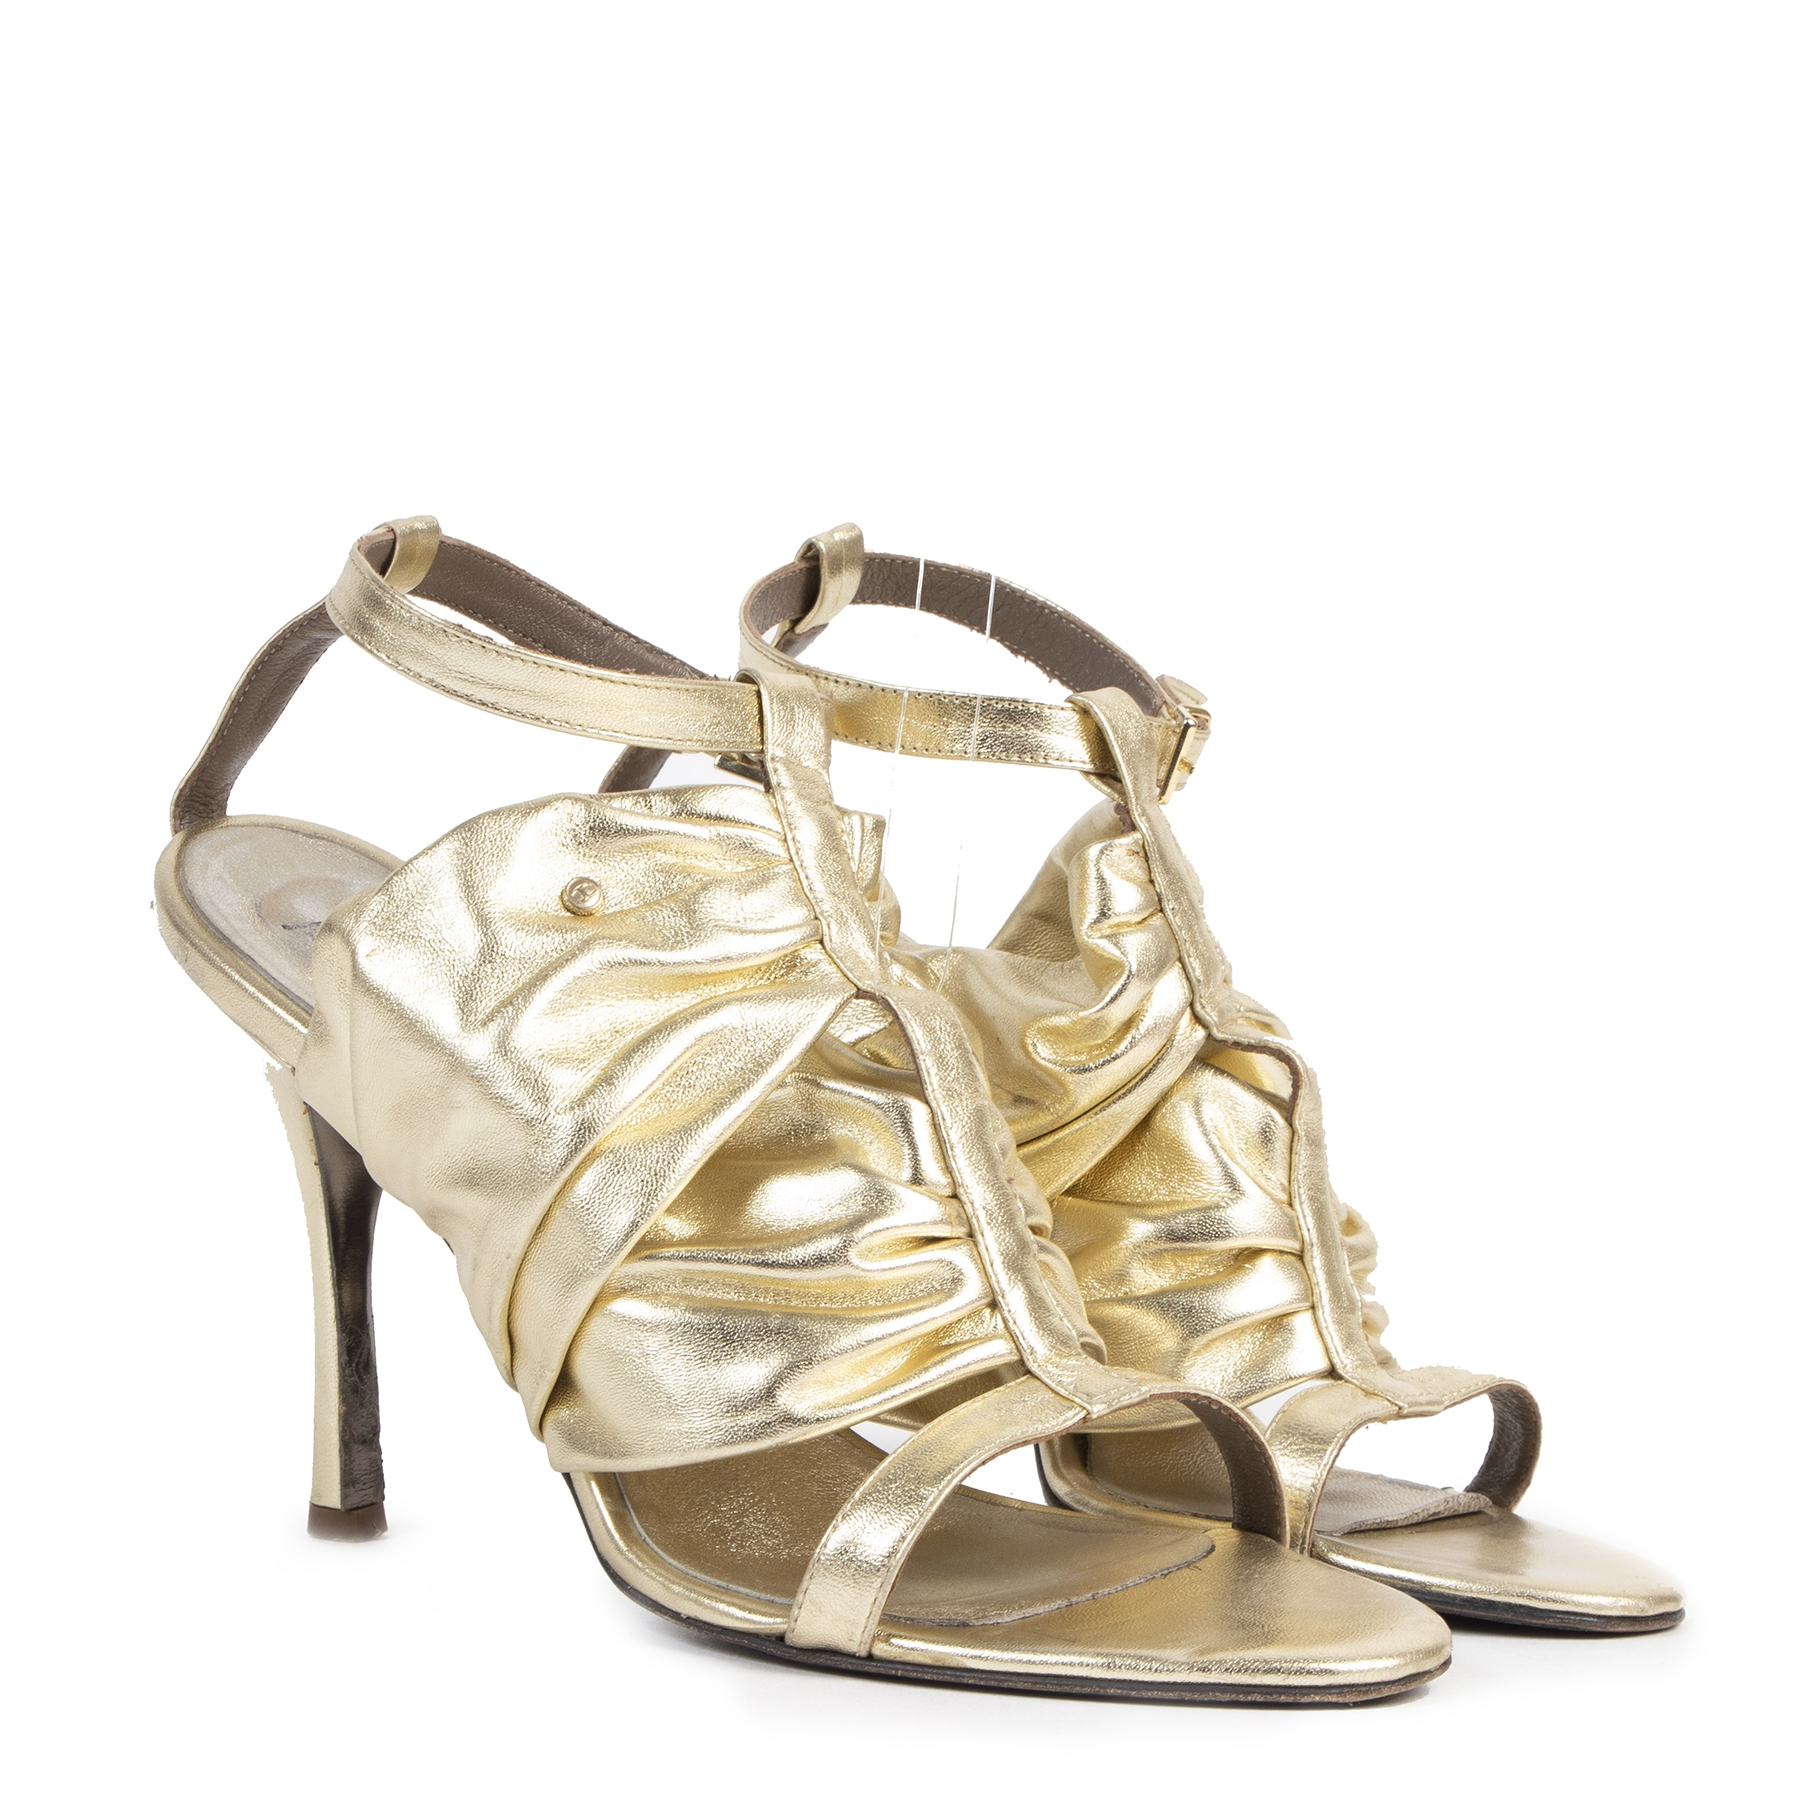 Authentique seconde-main vintage Just Cavalli Gold Heels - Size 40 achète en ligne webshop LabelLOV